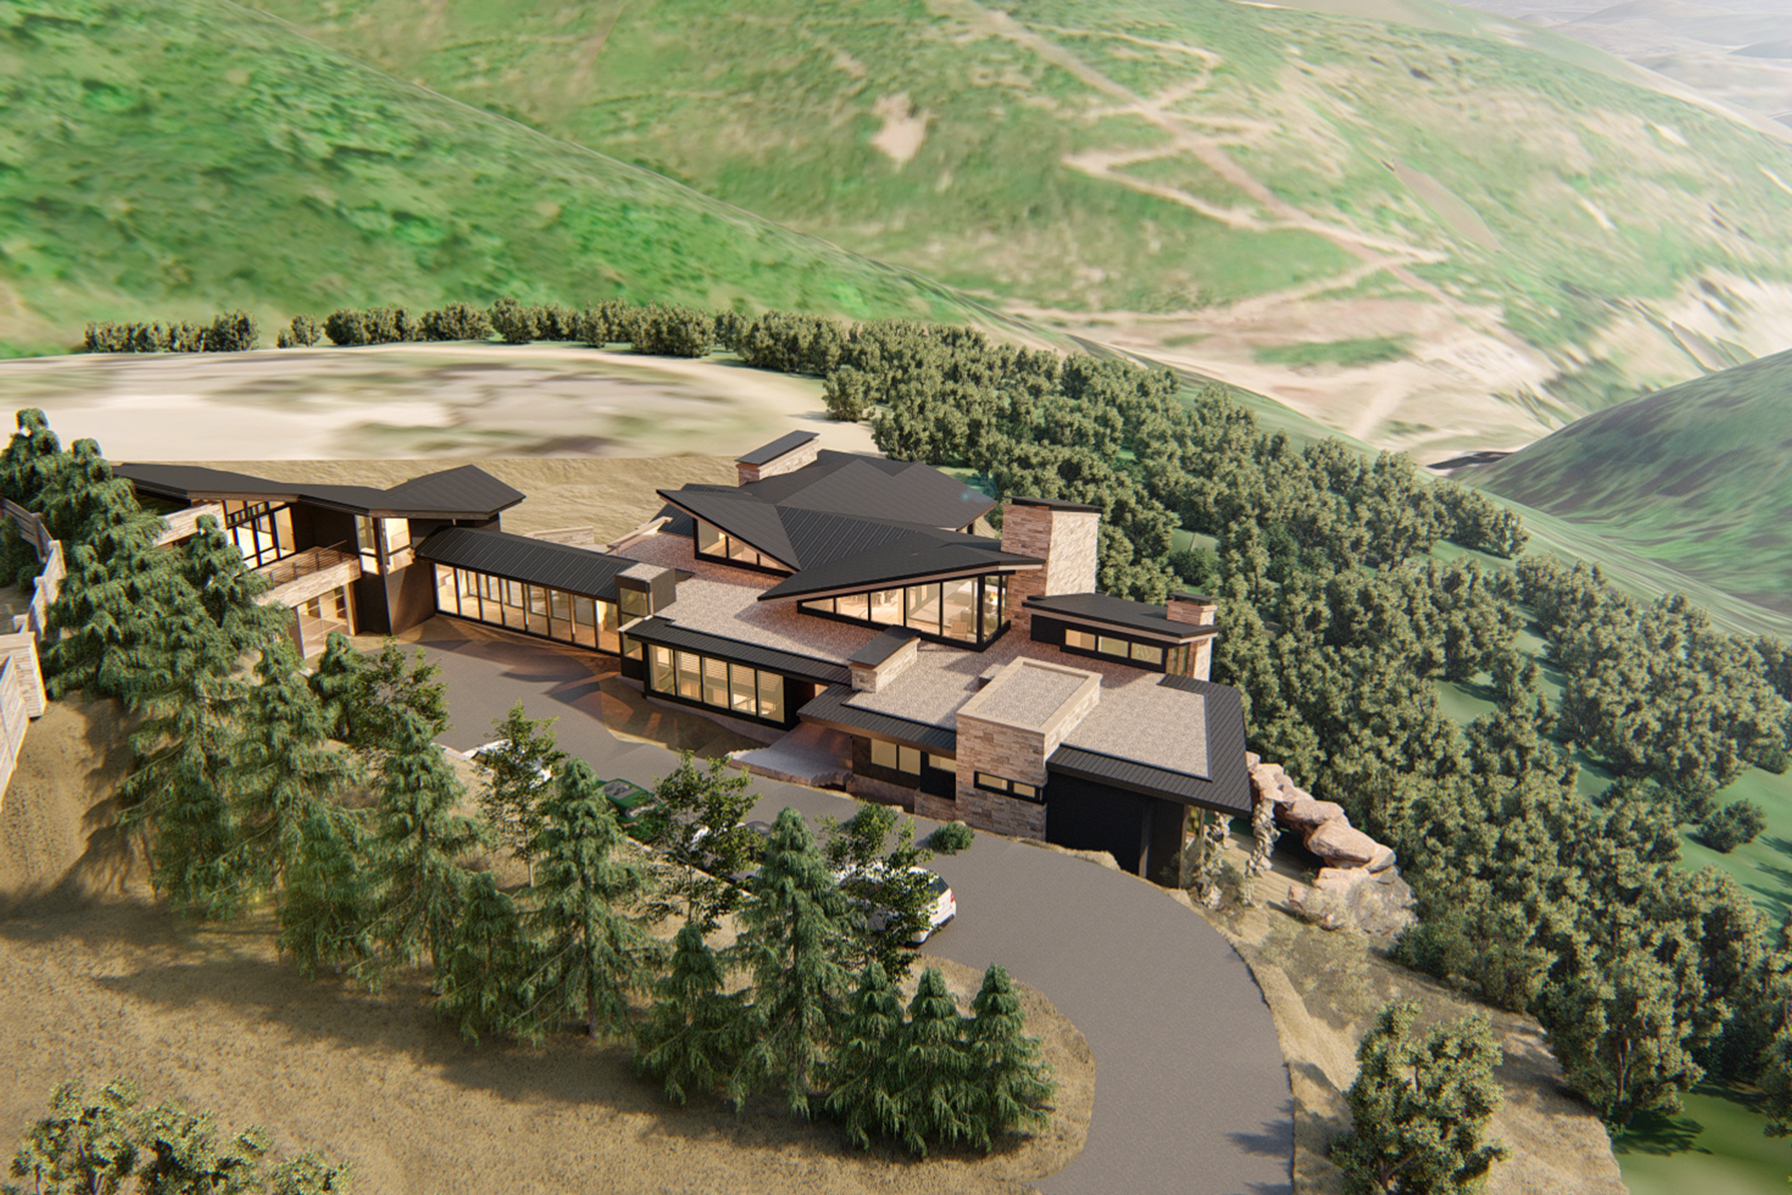 Park City Residence Rendering Exterior Fly Over